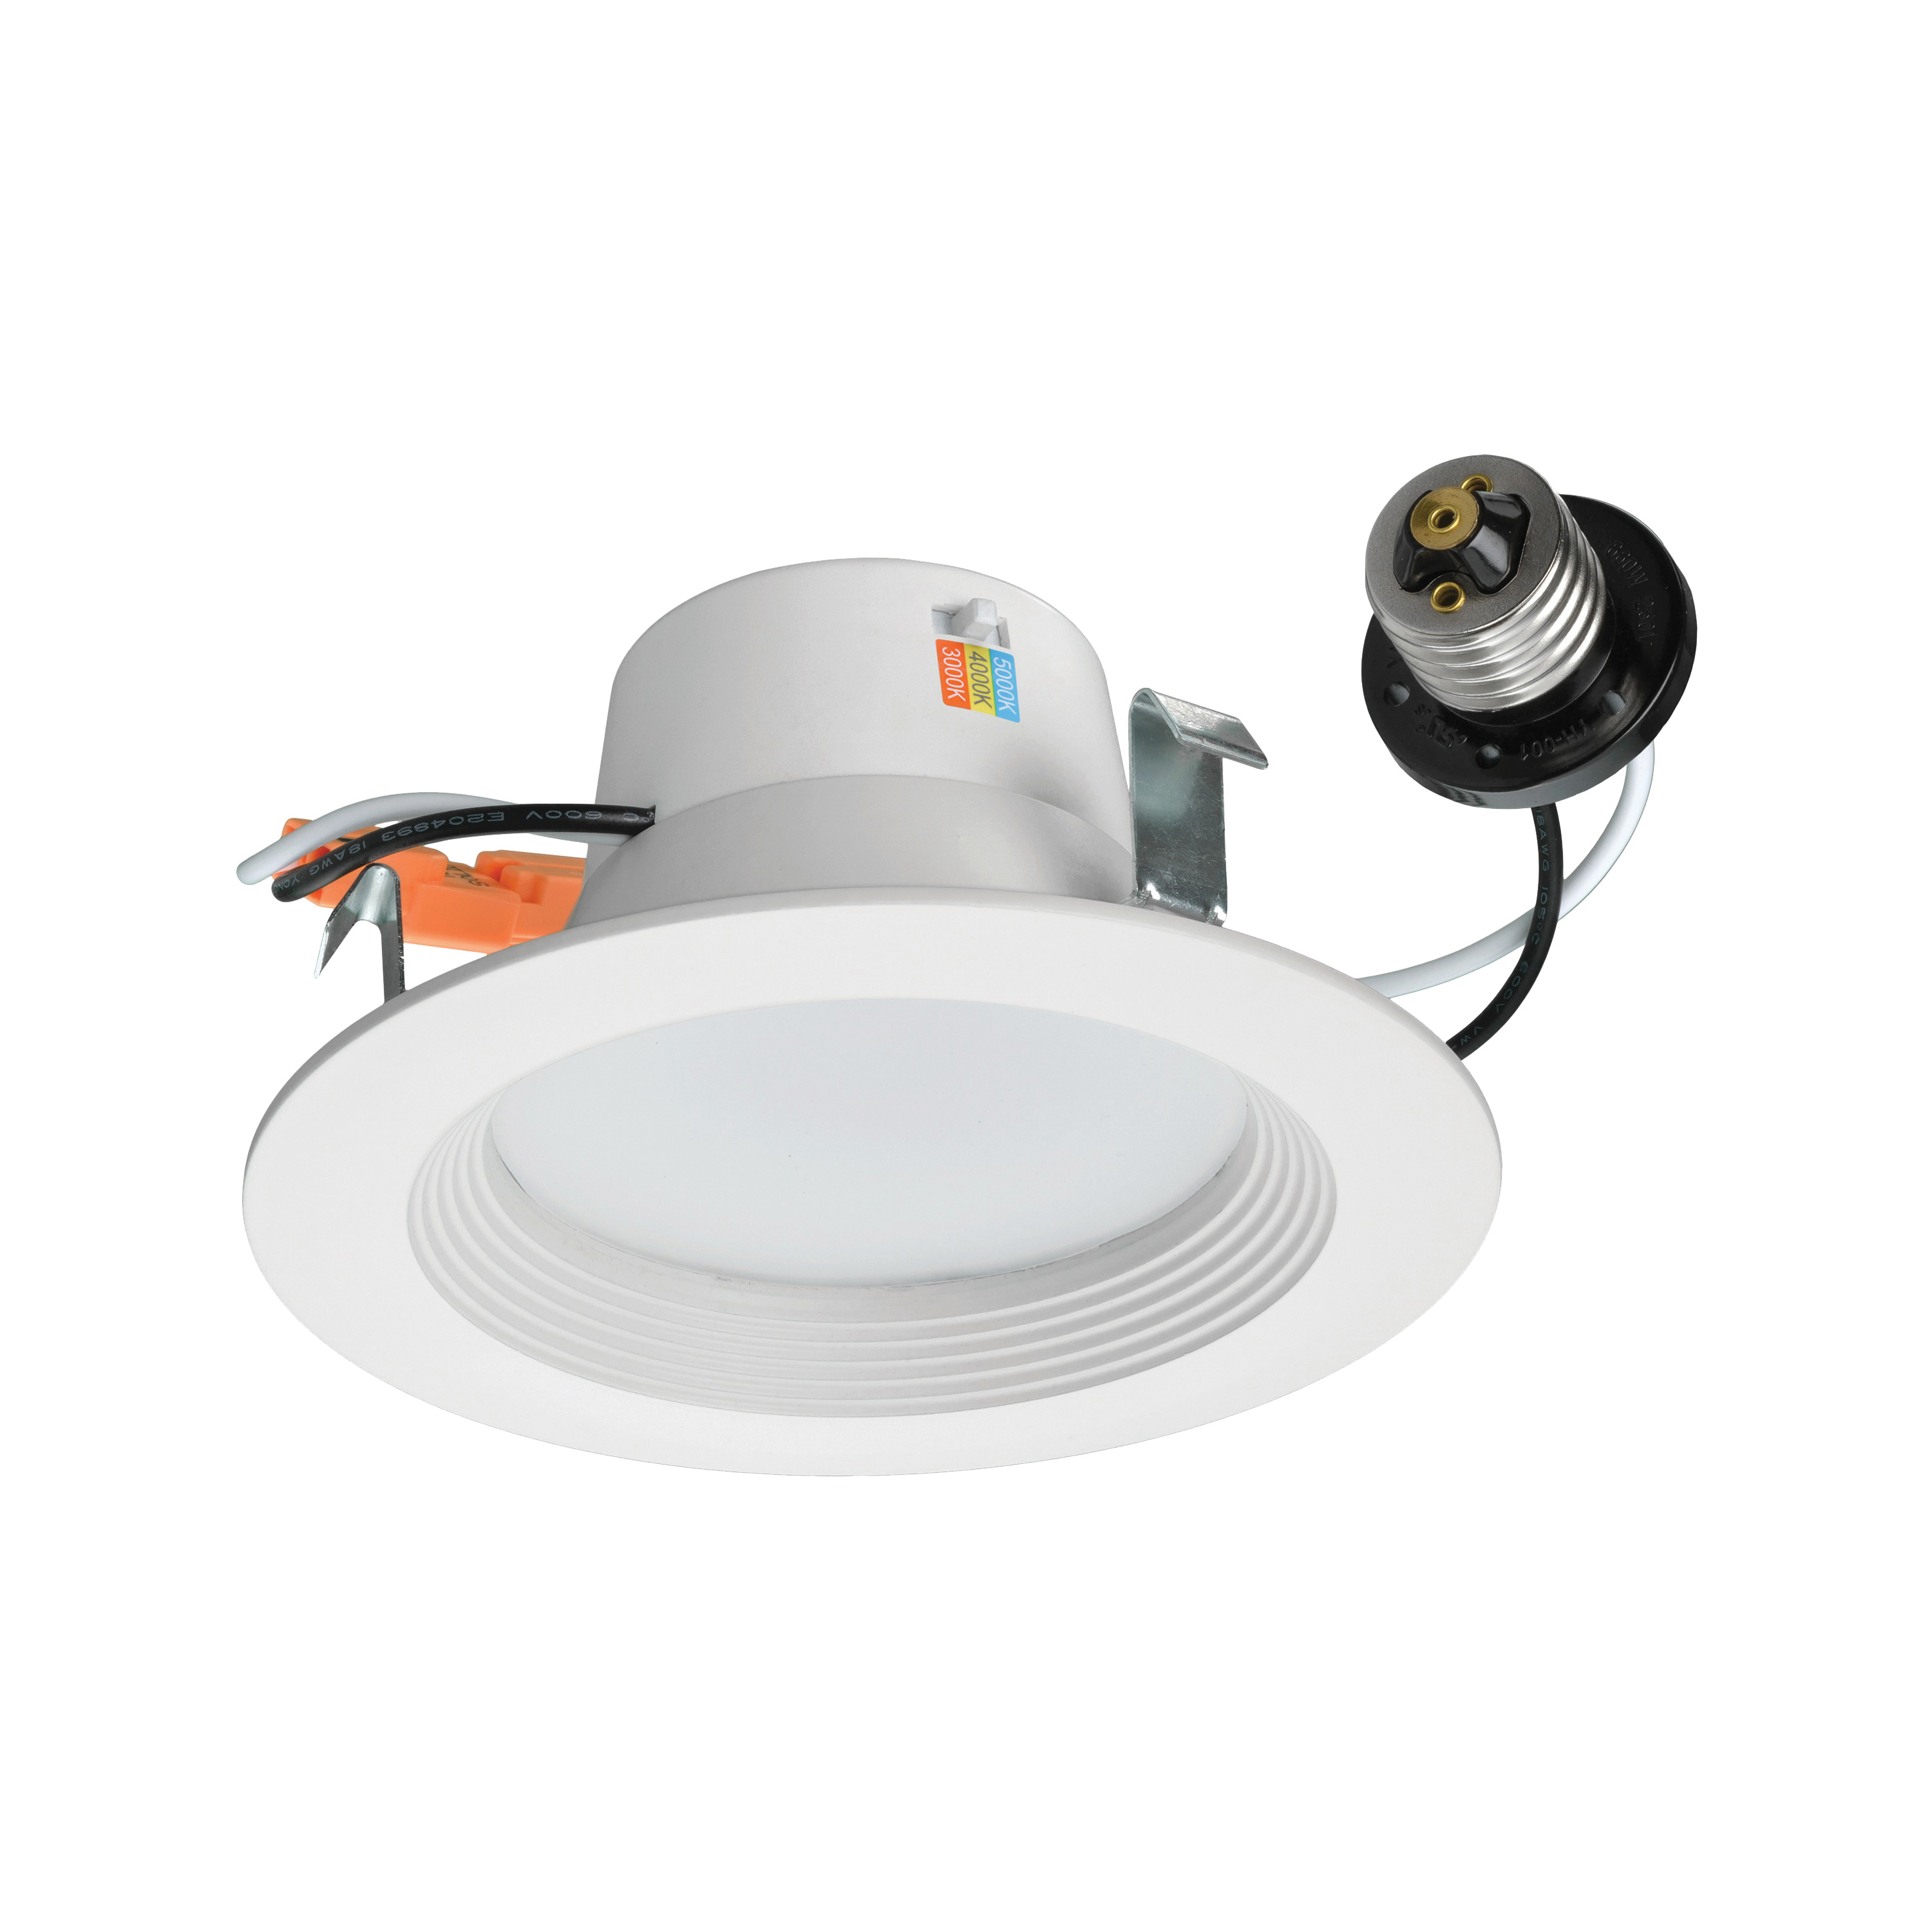 Picture of ETI 53185142 Recessed Downlight, 10 W, 120 V, LED Lamp